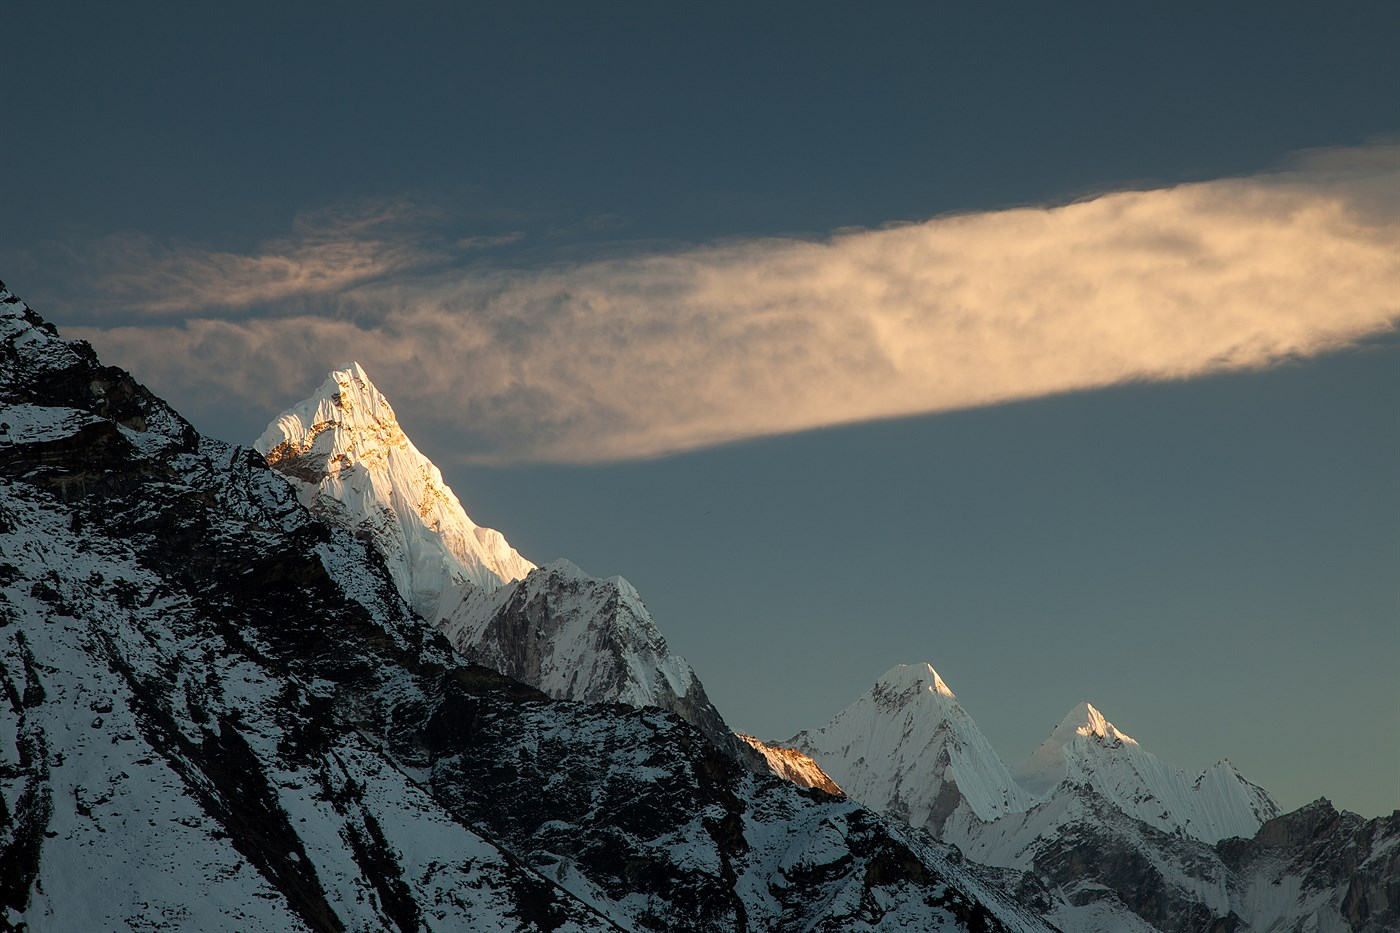 Ama Dablam Sunset, photo